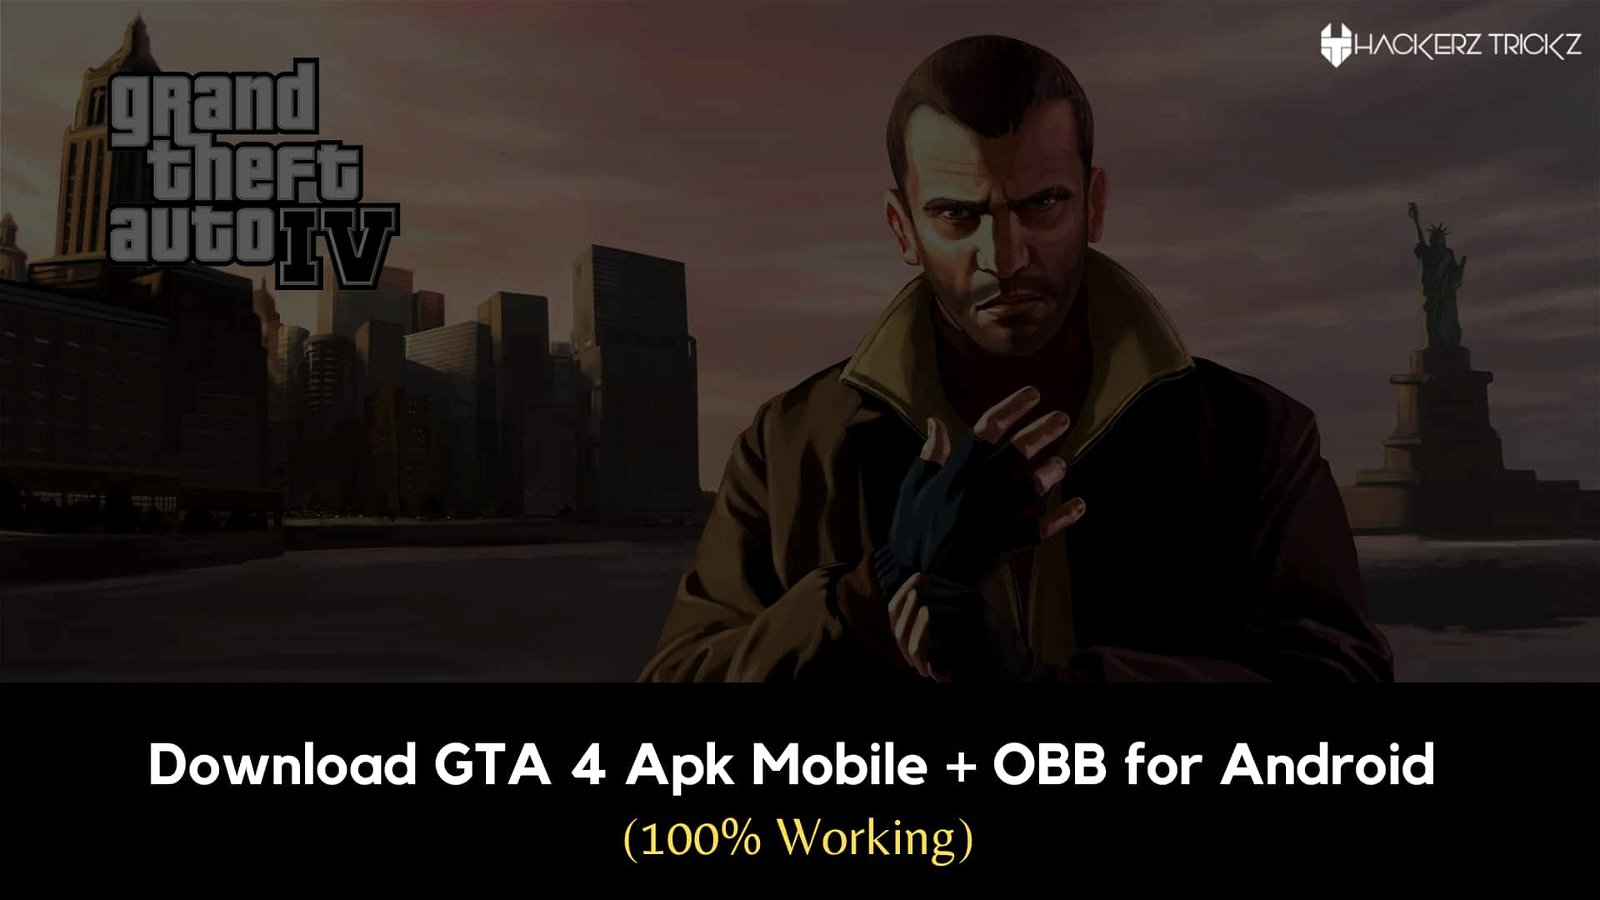 Download GTA 4 Apk Mobile + OBB for Android (100% Working)